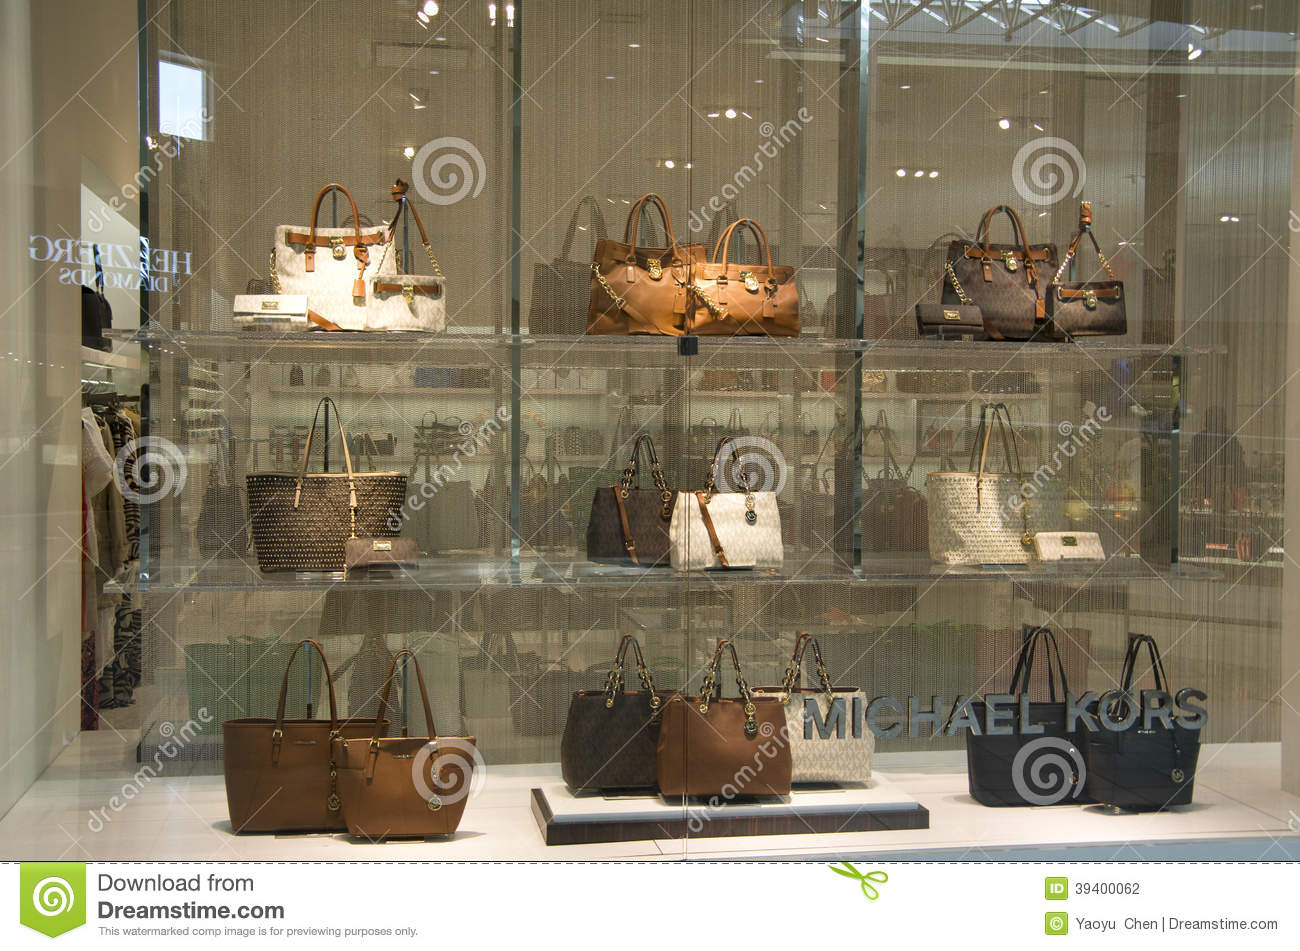 michael kors handbags outlet gilroy michael kors outlet locations nj